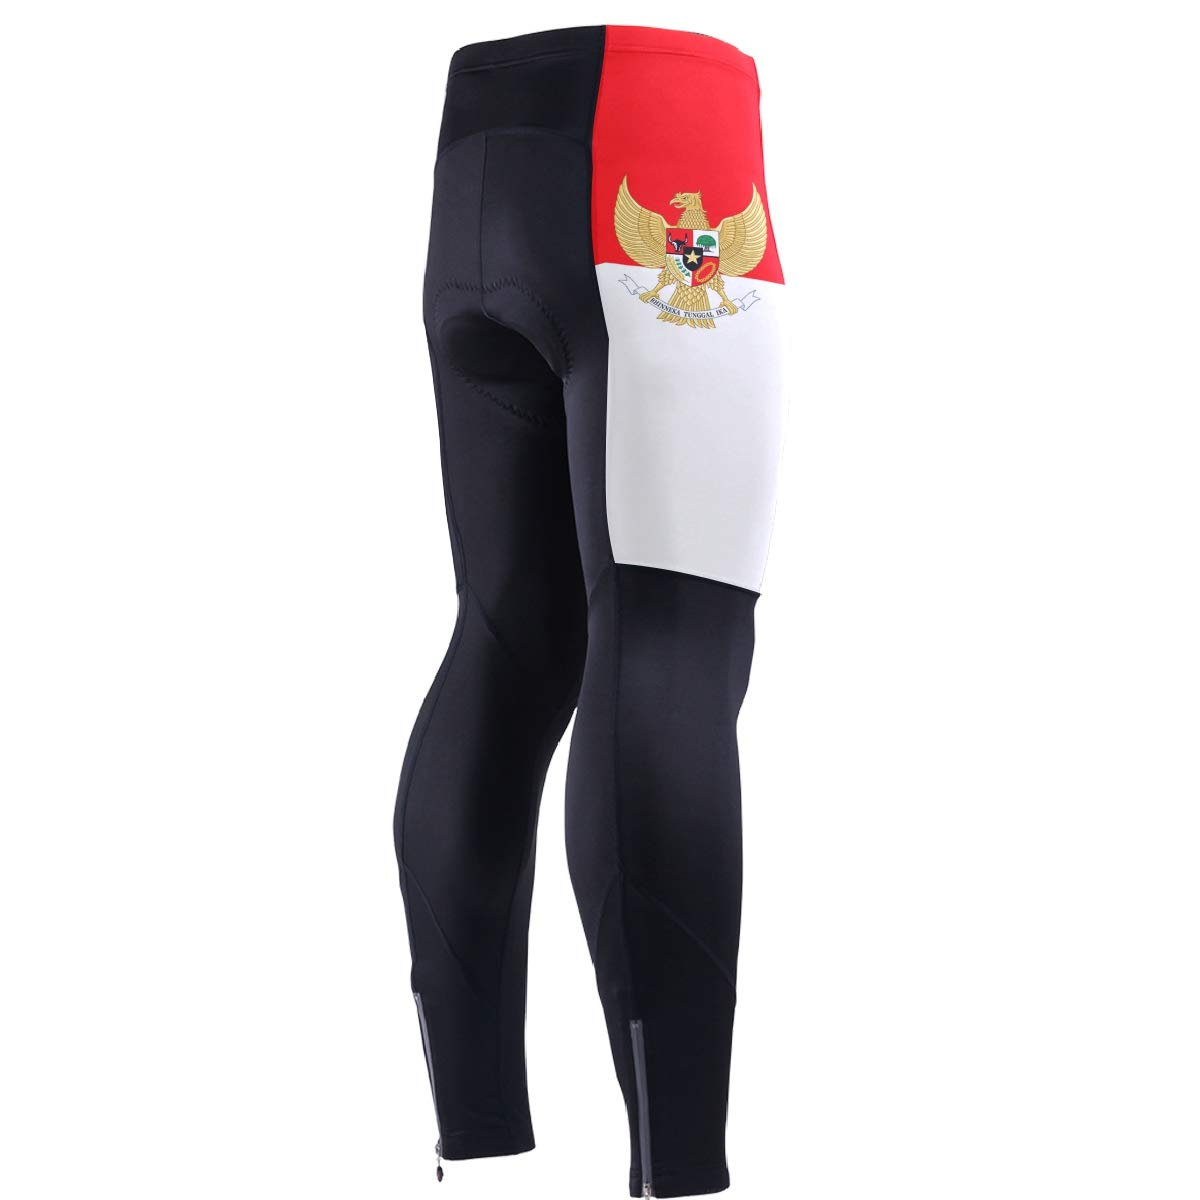 CHINEIN Men's Cycling Jersey Long Sleeve with 3 Rear Pockets Pants Indonesia Flag National Emblem by CHINEIN